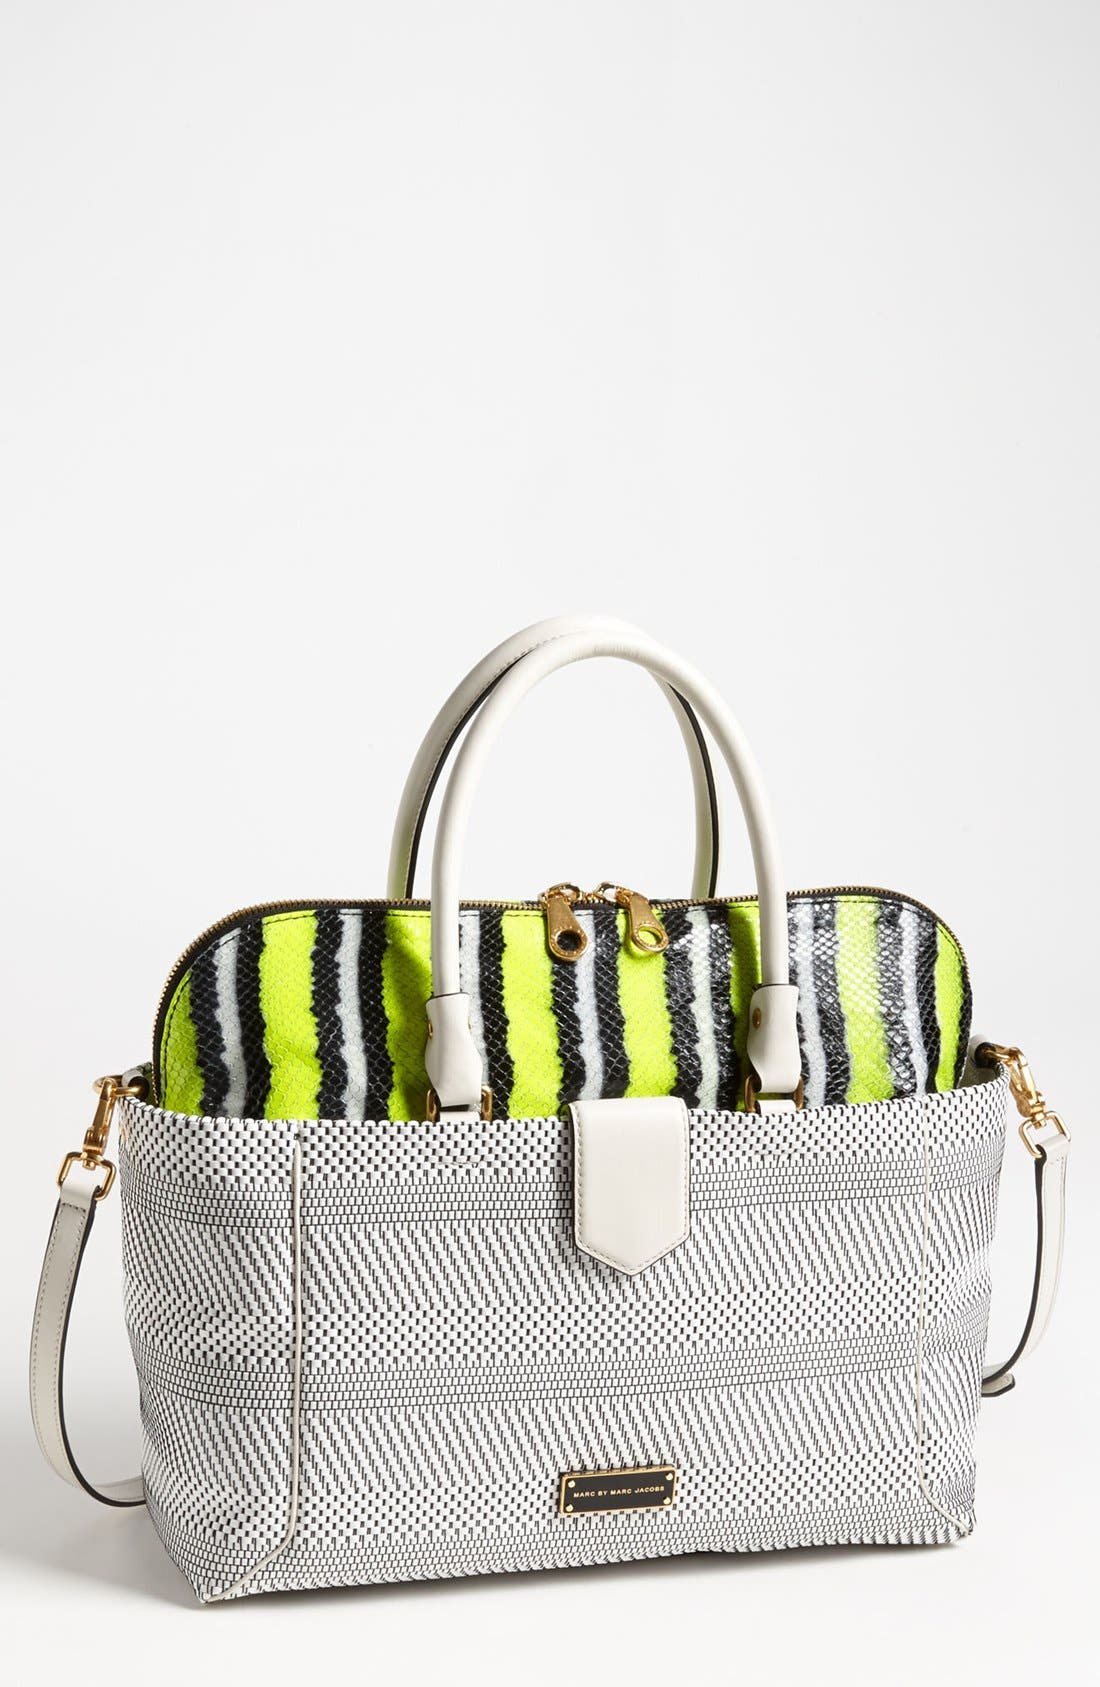 Alternate Image 1 Selected - MARC BY MARC JACOBS 'Double Trouble Anemone - Whitney' Leather Tote